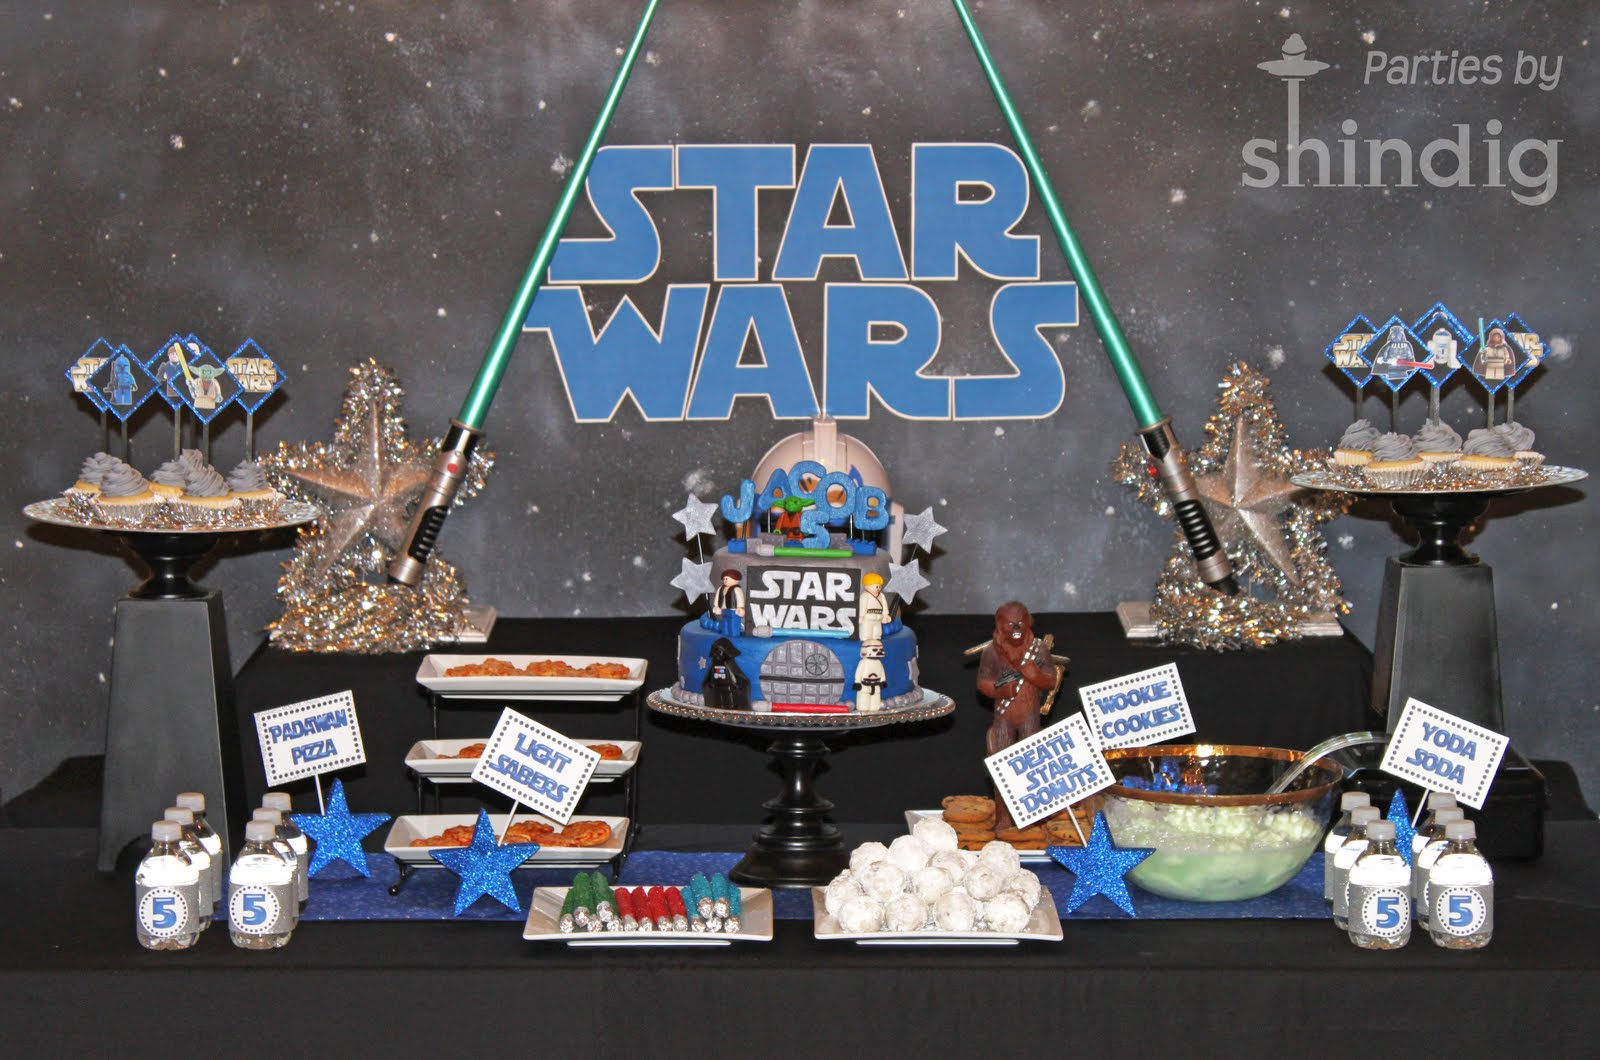 Star Wars Decorating Ideas Amanda 39s Parties To Go Star Wars Party Details